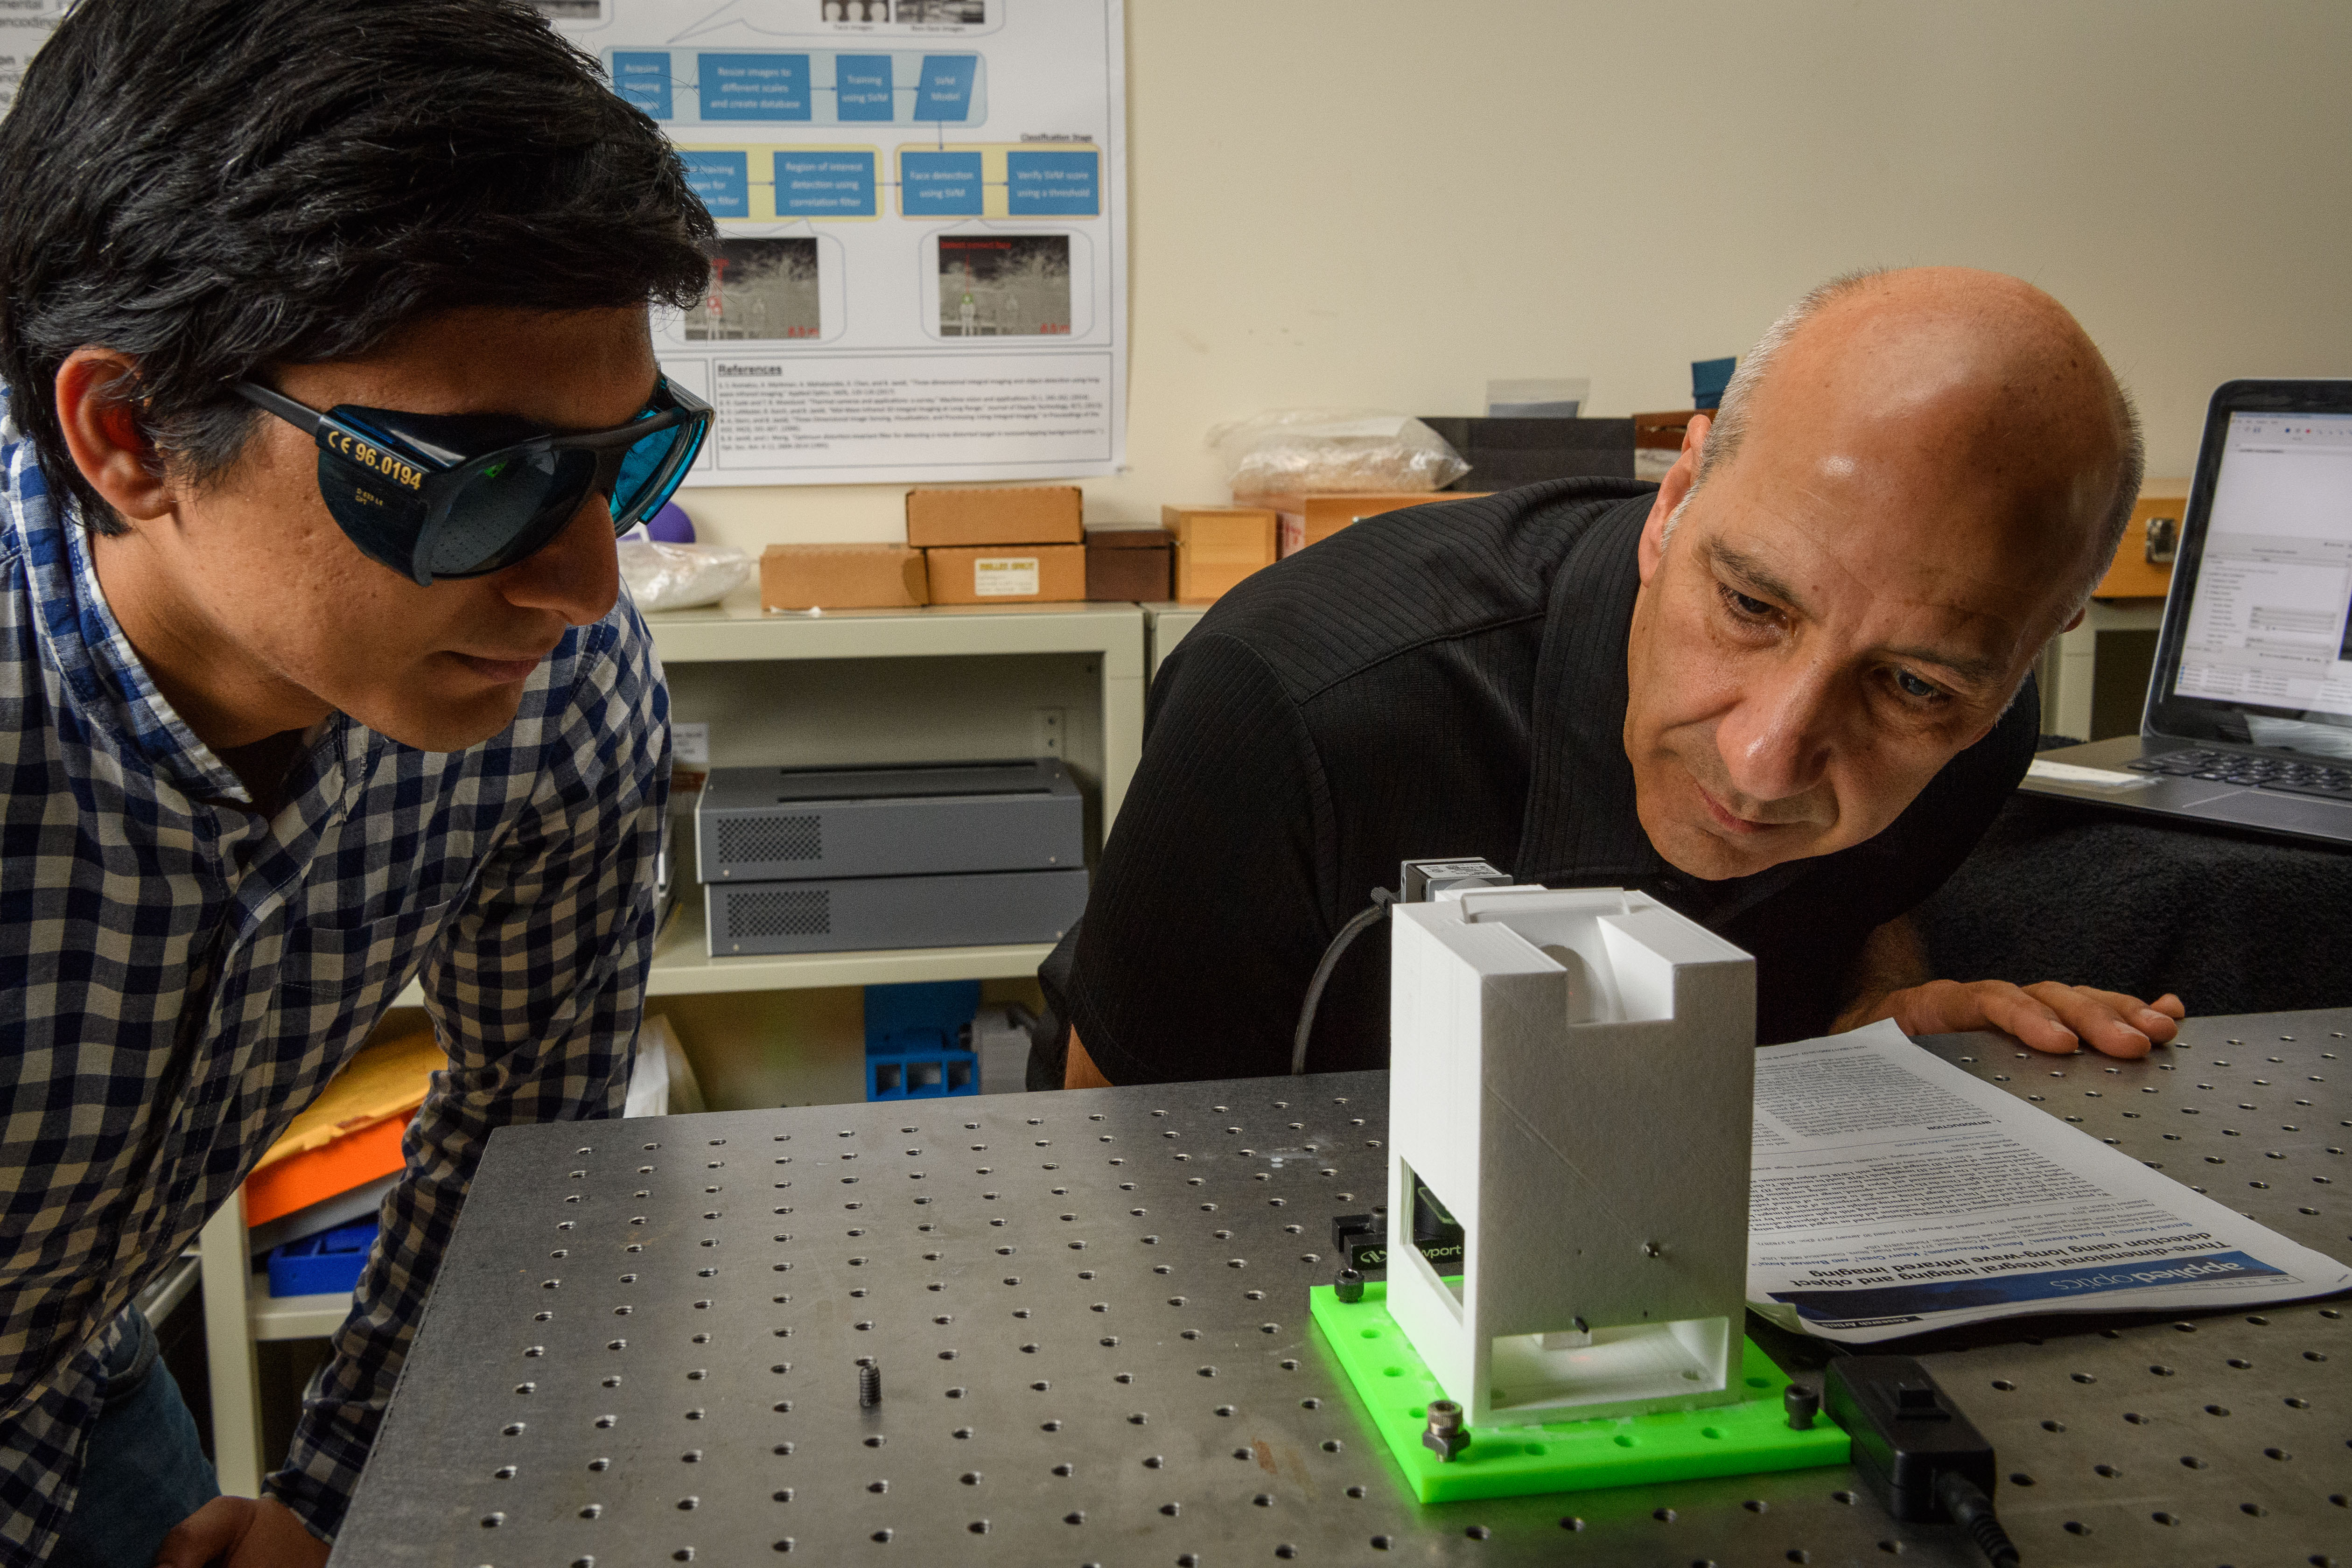 Siddharth Rawat, left, a Ph.D. student, and Bahram Javidi, distinguished professor of electrical and computer engineering, operate a prototype device to examine blood samples for diseases at the Information Technologies Engineering Building (ITE) on Sept. 28, 2017. (Peter Morenus/UConn Photo)